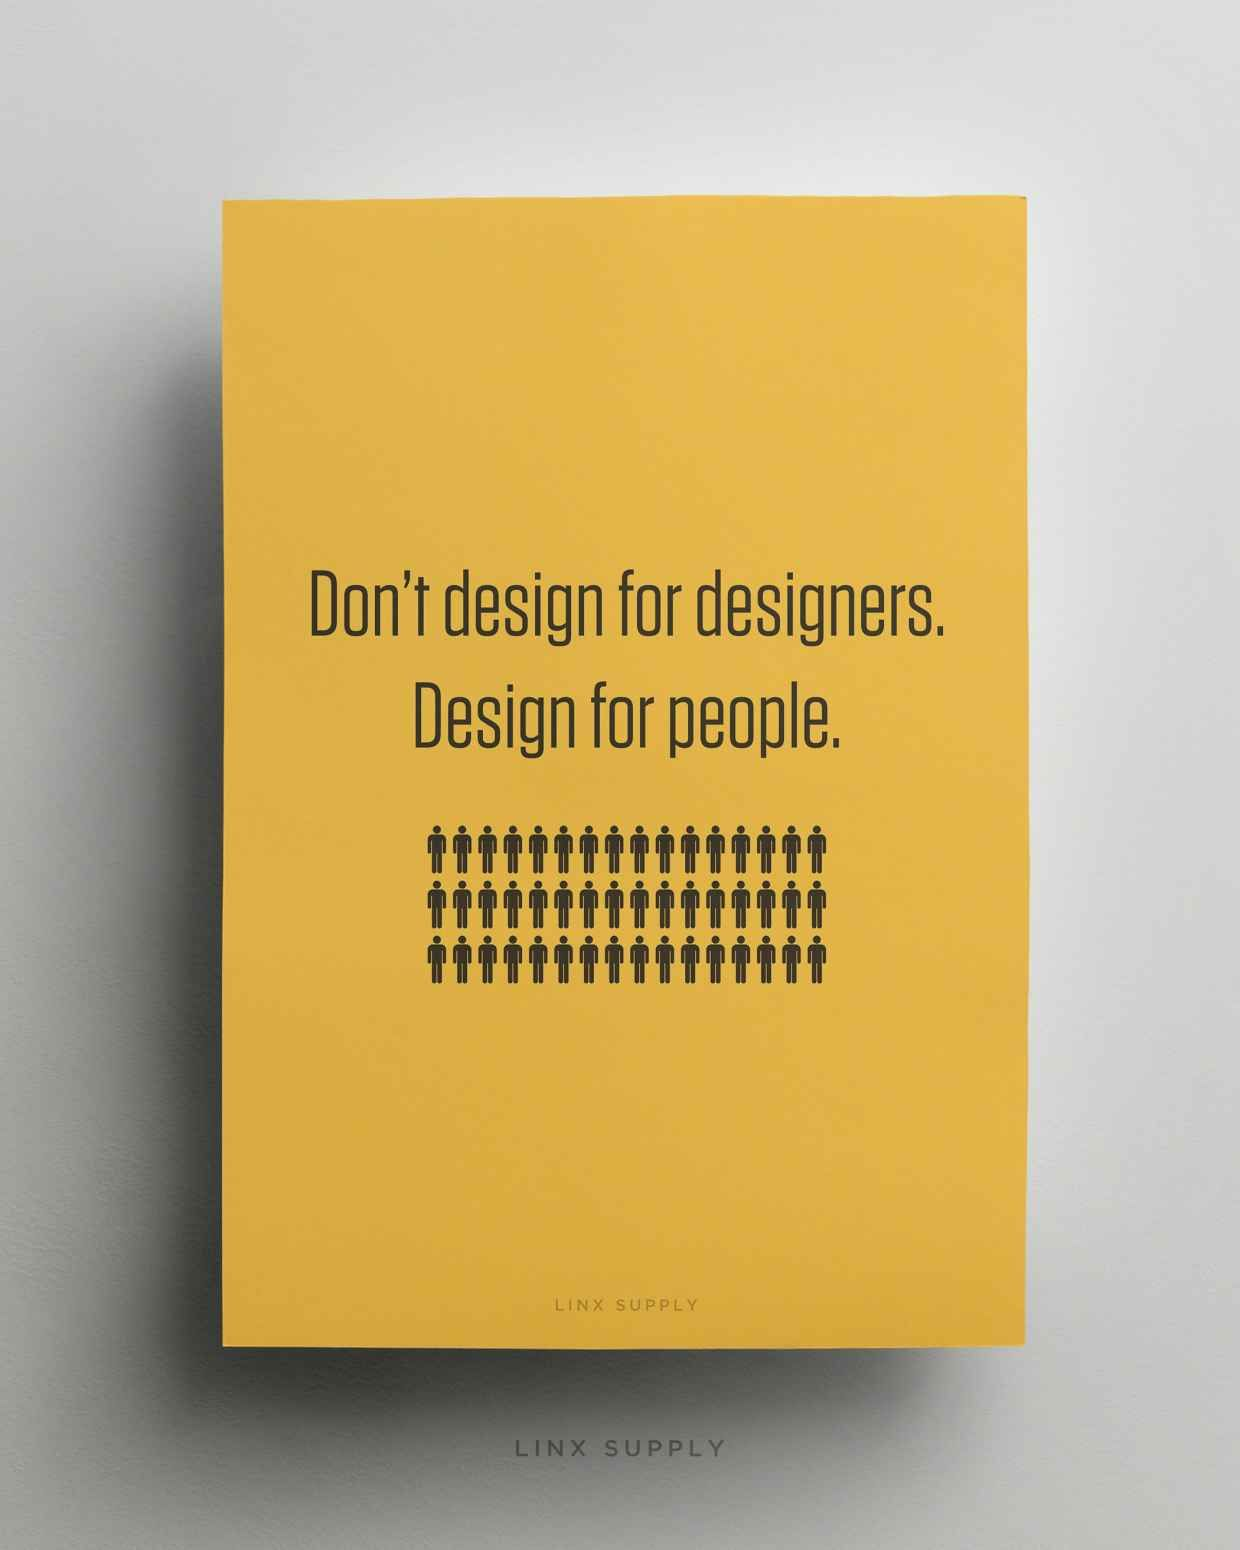 Poster design quotes - Here Are Some Awesome Motivational Posters For Your Workspace Or Office